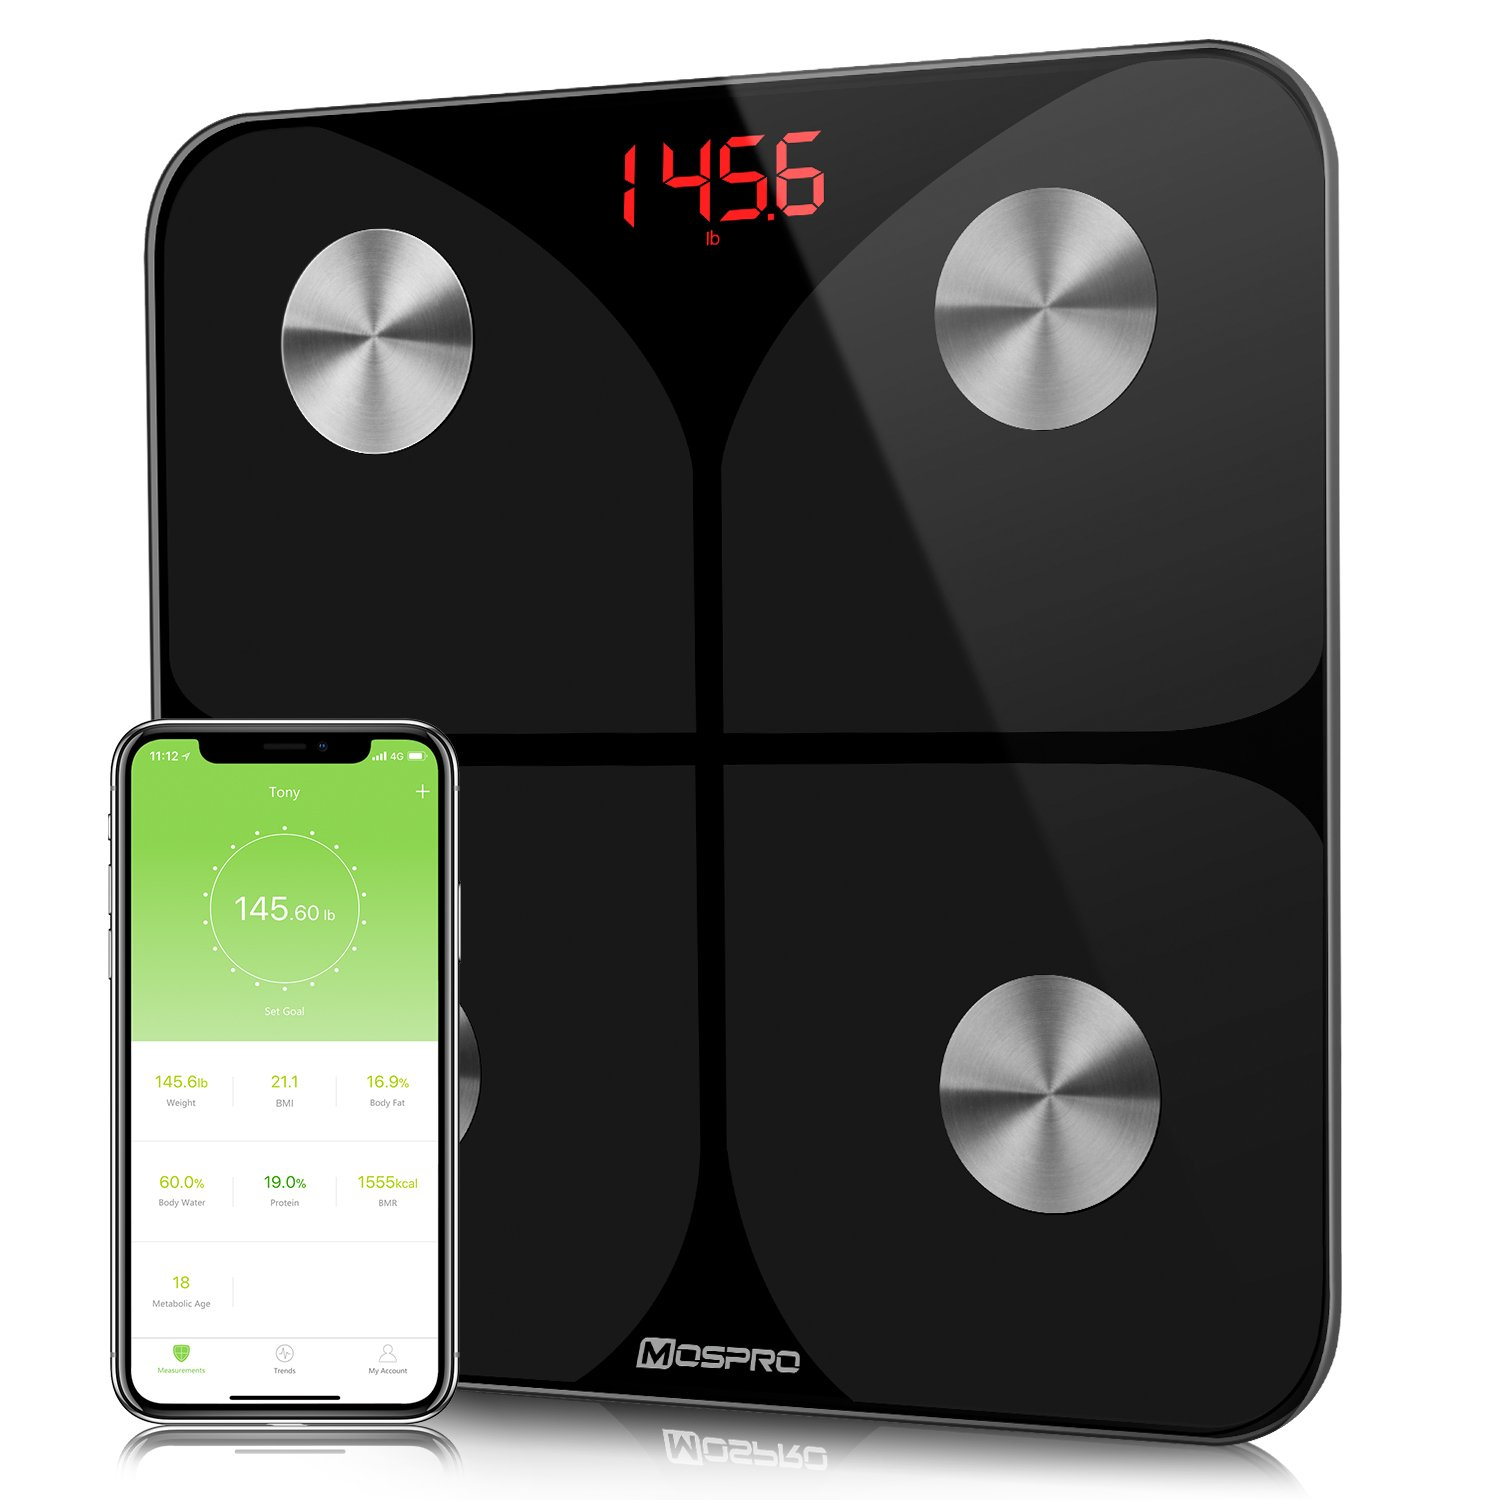 Digital Body Fat Weight Scale - FDA Approved Smart Wireless BMI Bathroom Scale Body Composition Analyzer with iOS and Android App,330lb